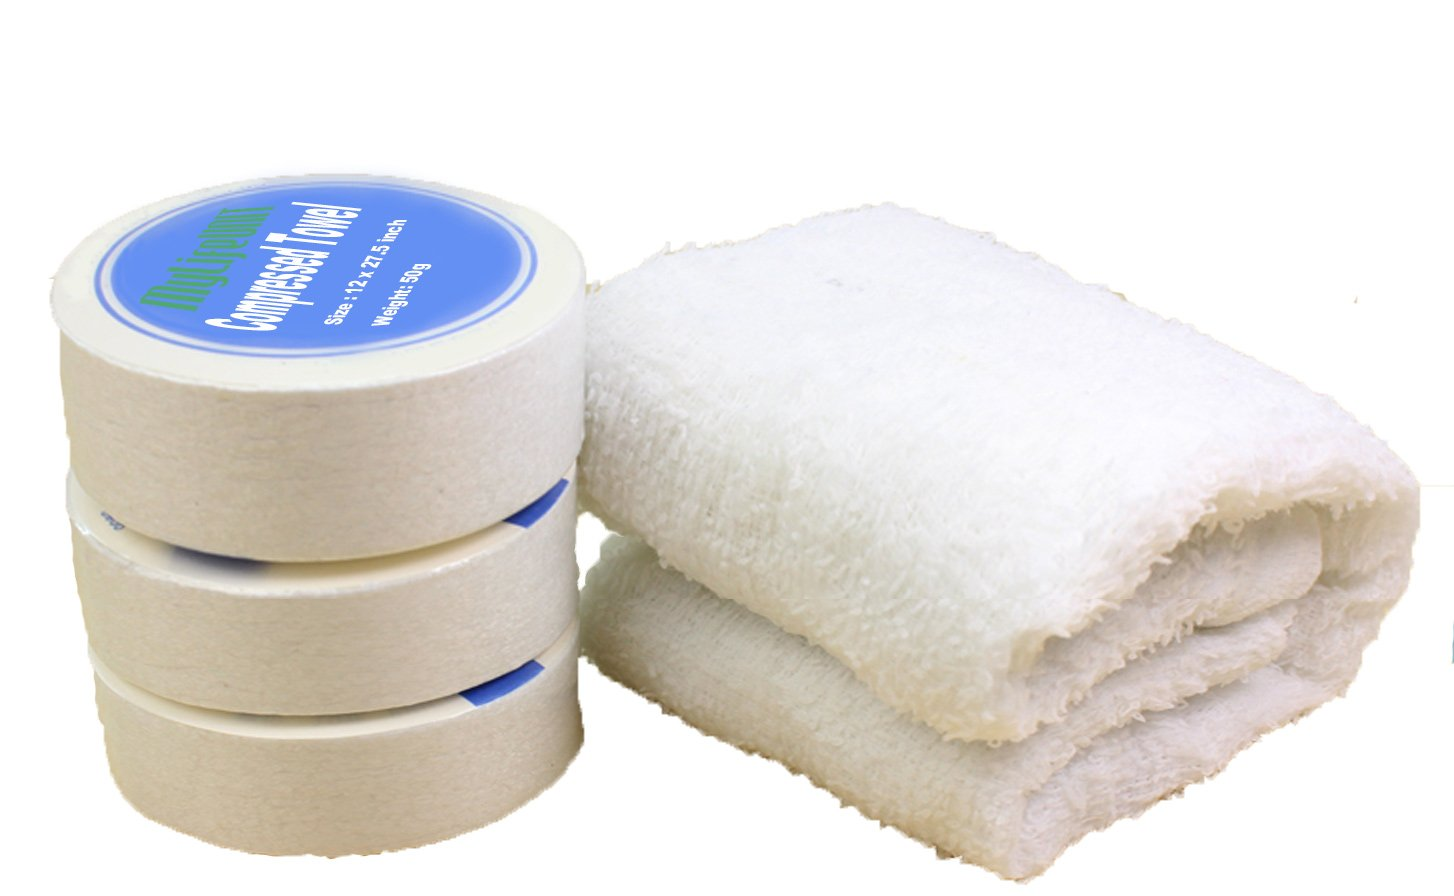 MyLifeUNIT Compressed Towels Tablets, Pack of 5 BT15007